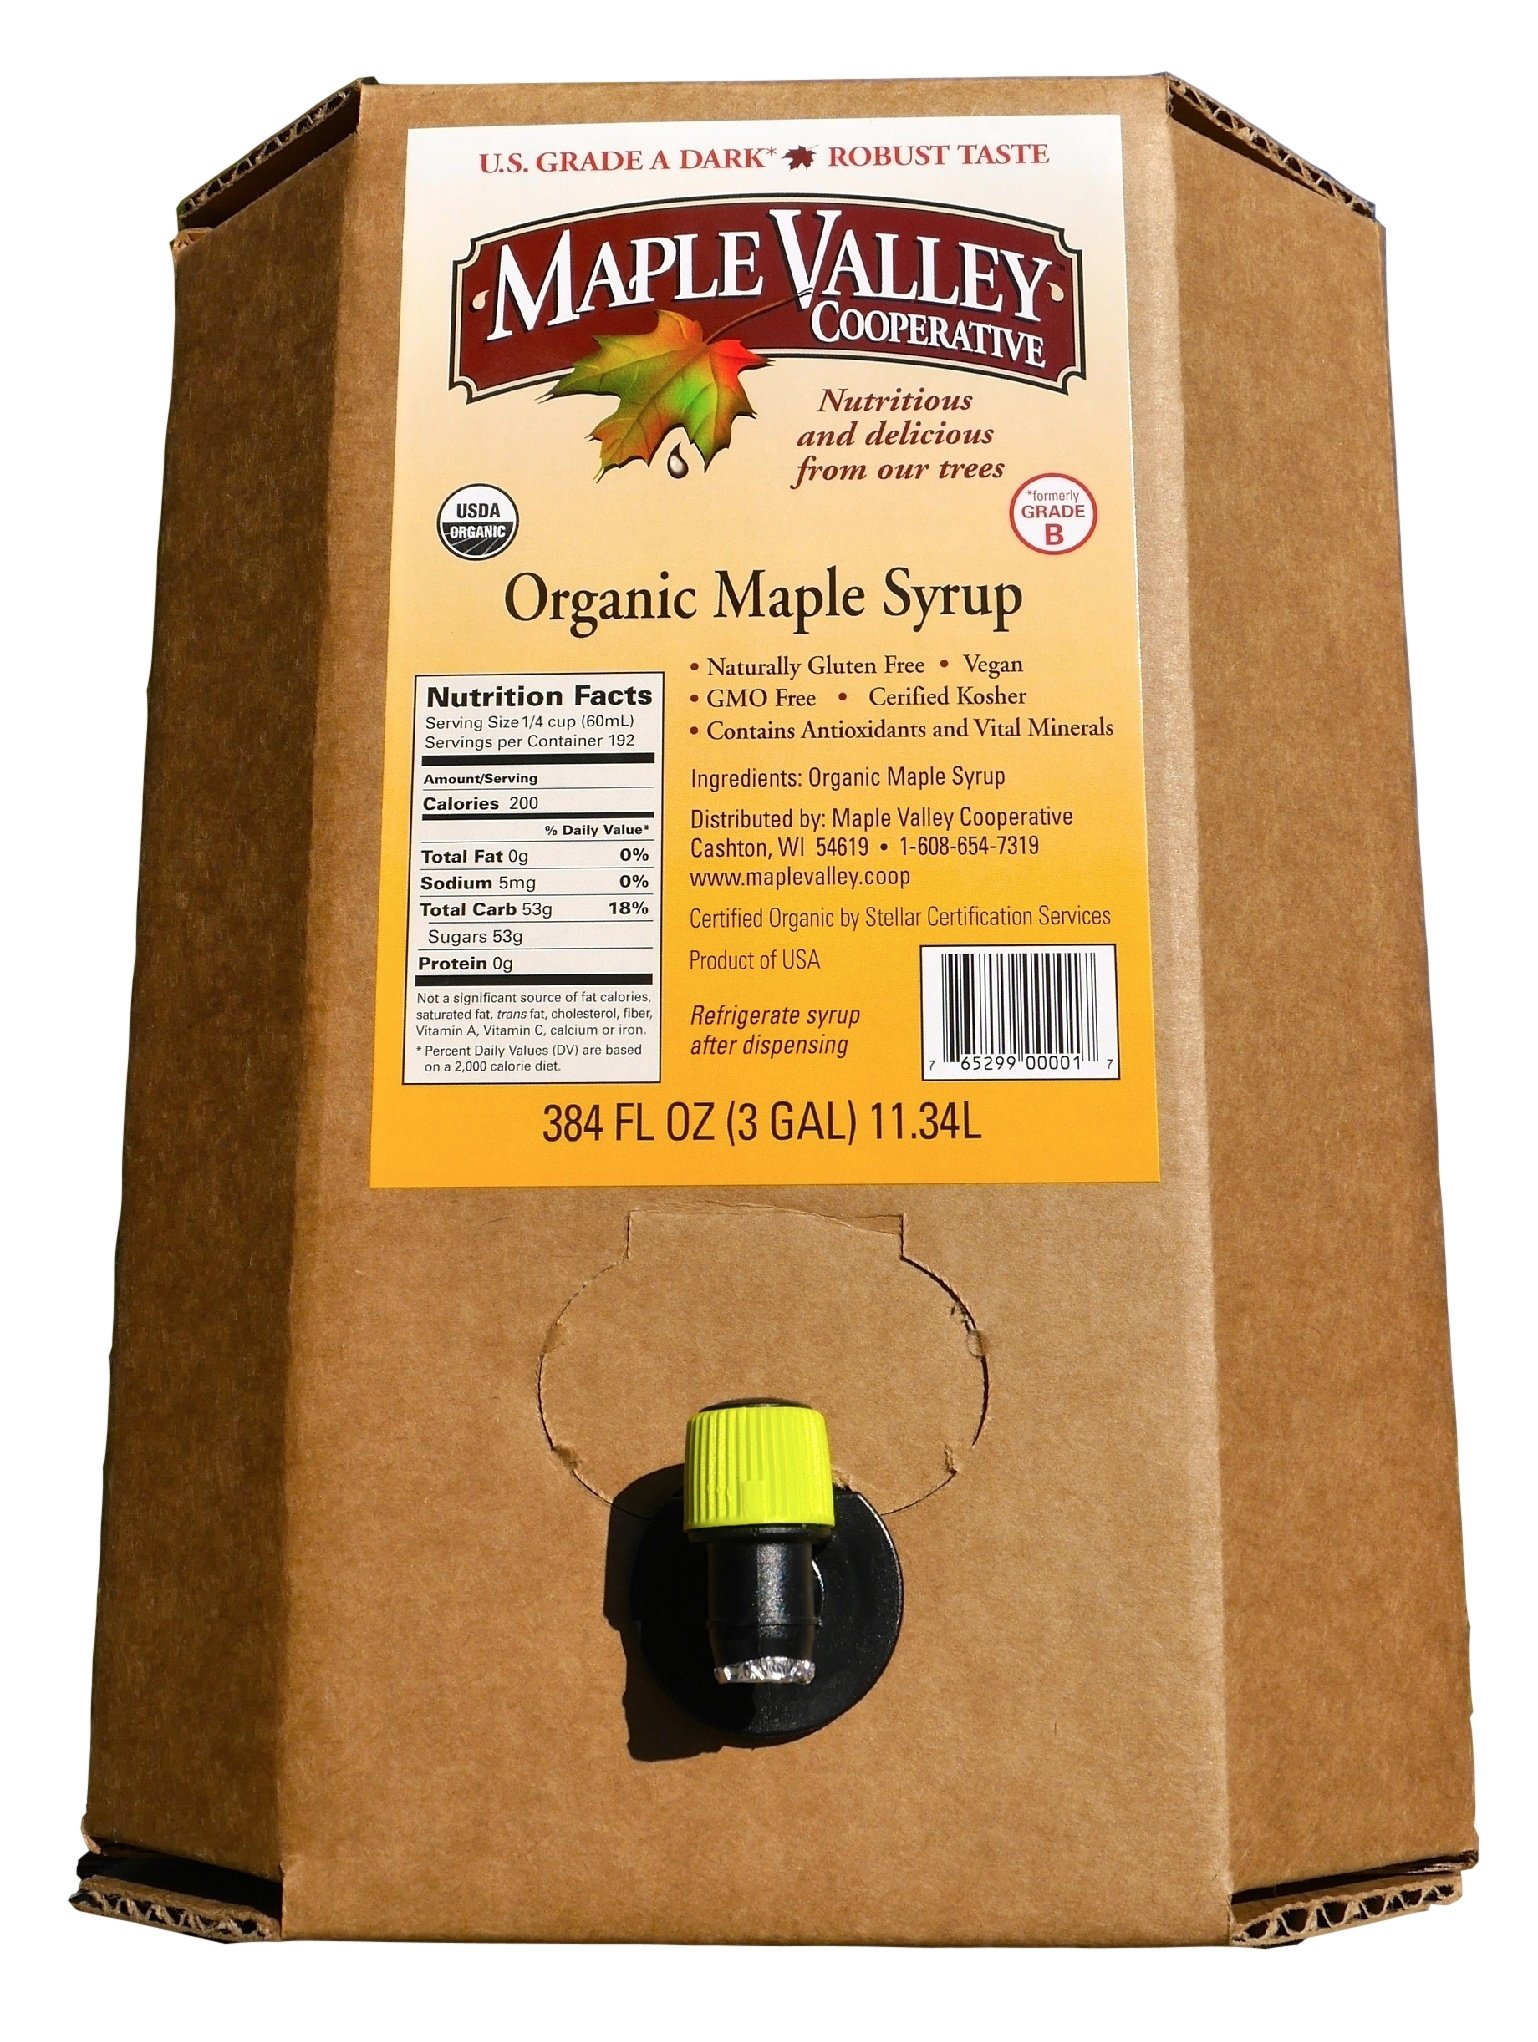 Maple Valley Organic Grade A Dark Robust Maple Syrup (Formerly Grade B) 3-Gallon Bag-In-Box by Maple Valley